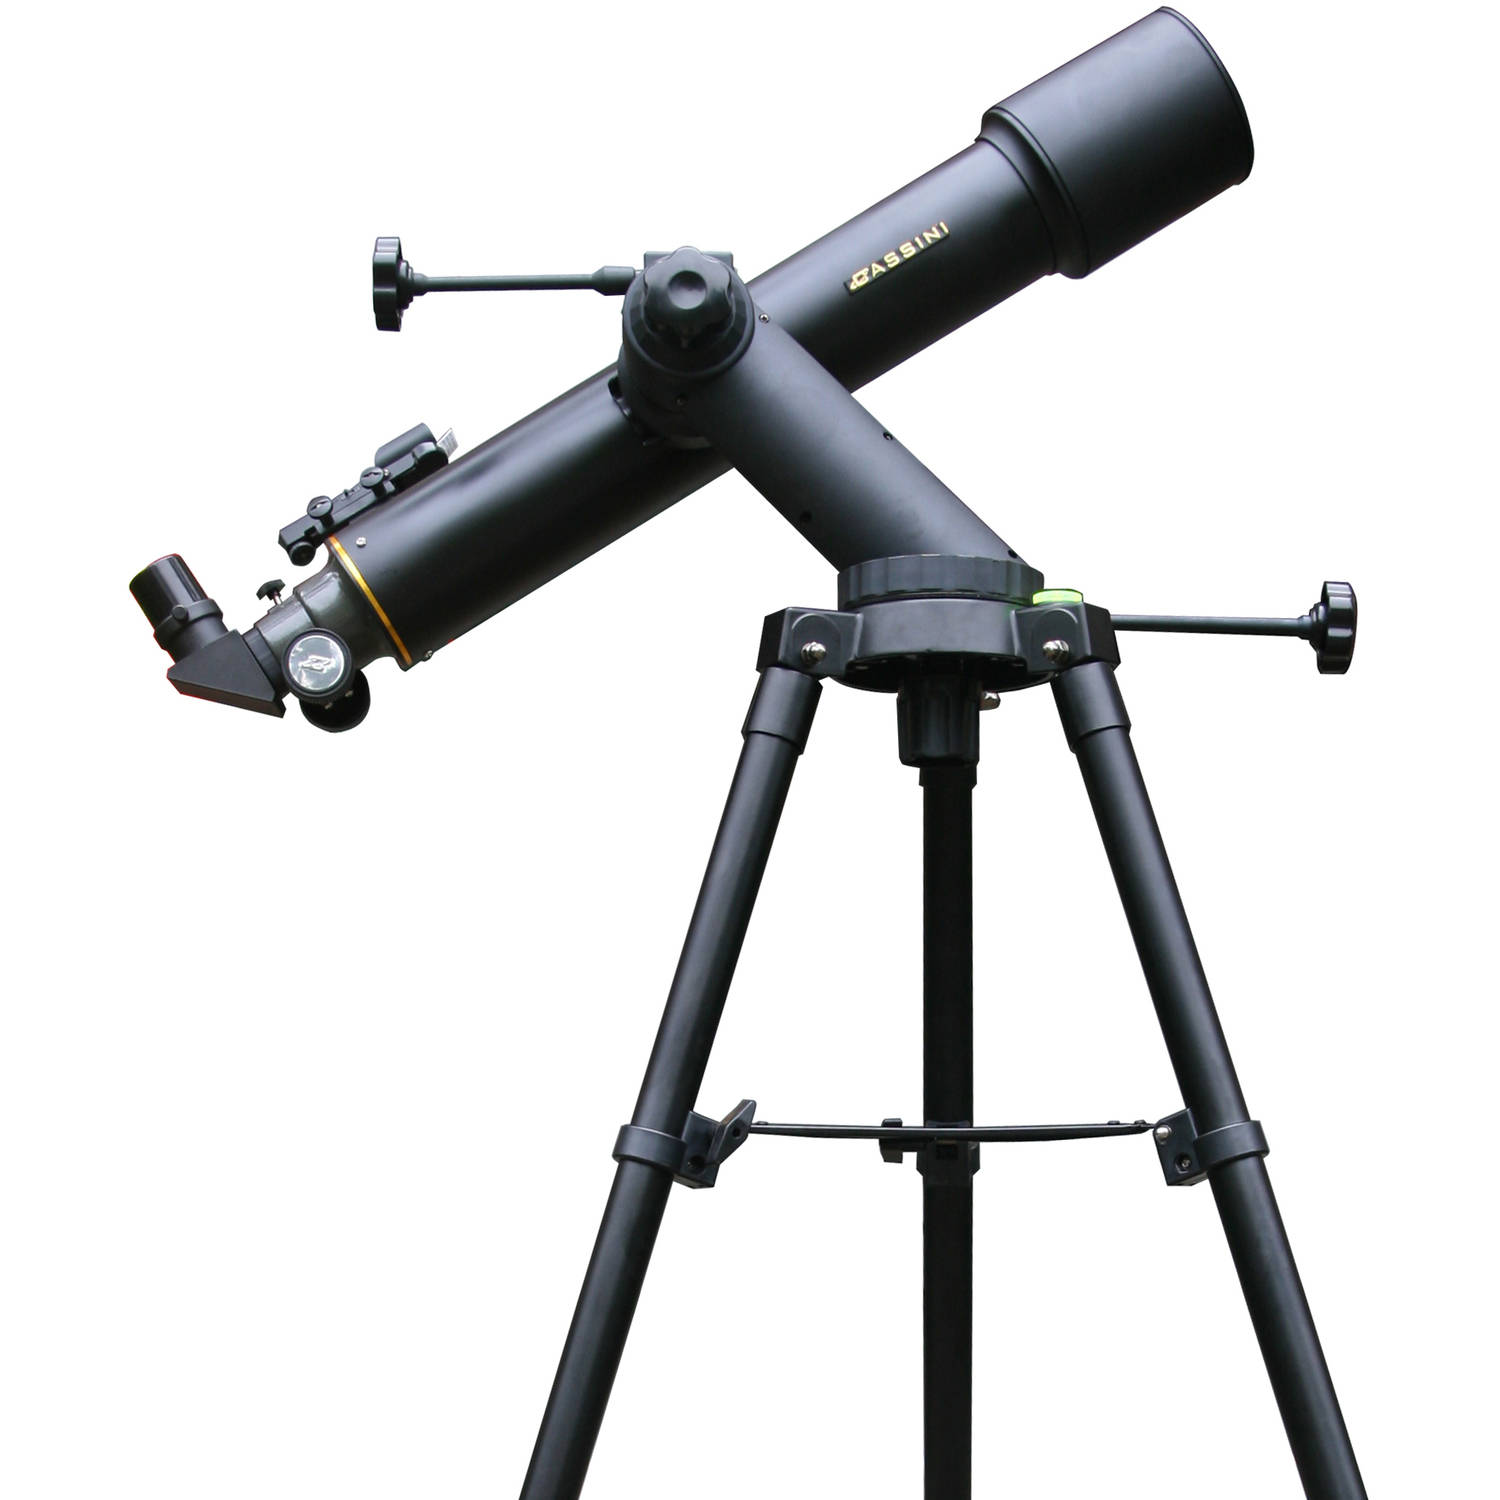 Cassini 600mm x 90mm Tracker Series Astronomical Refractor Telescope with Tripod - Black, C-60090TR